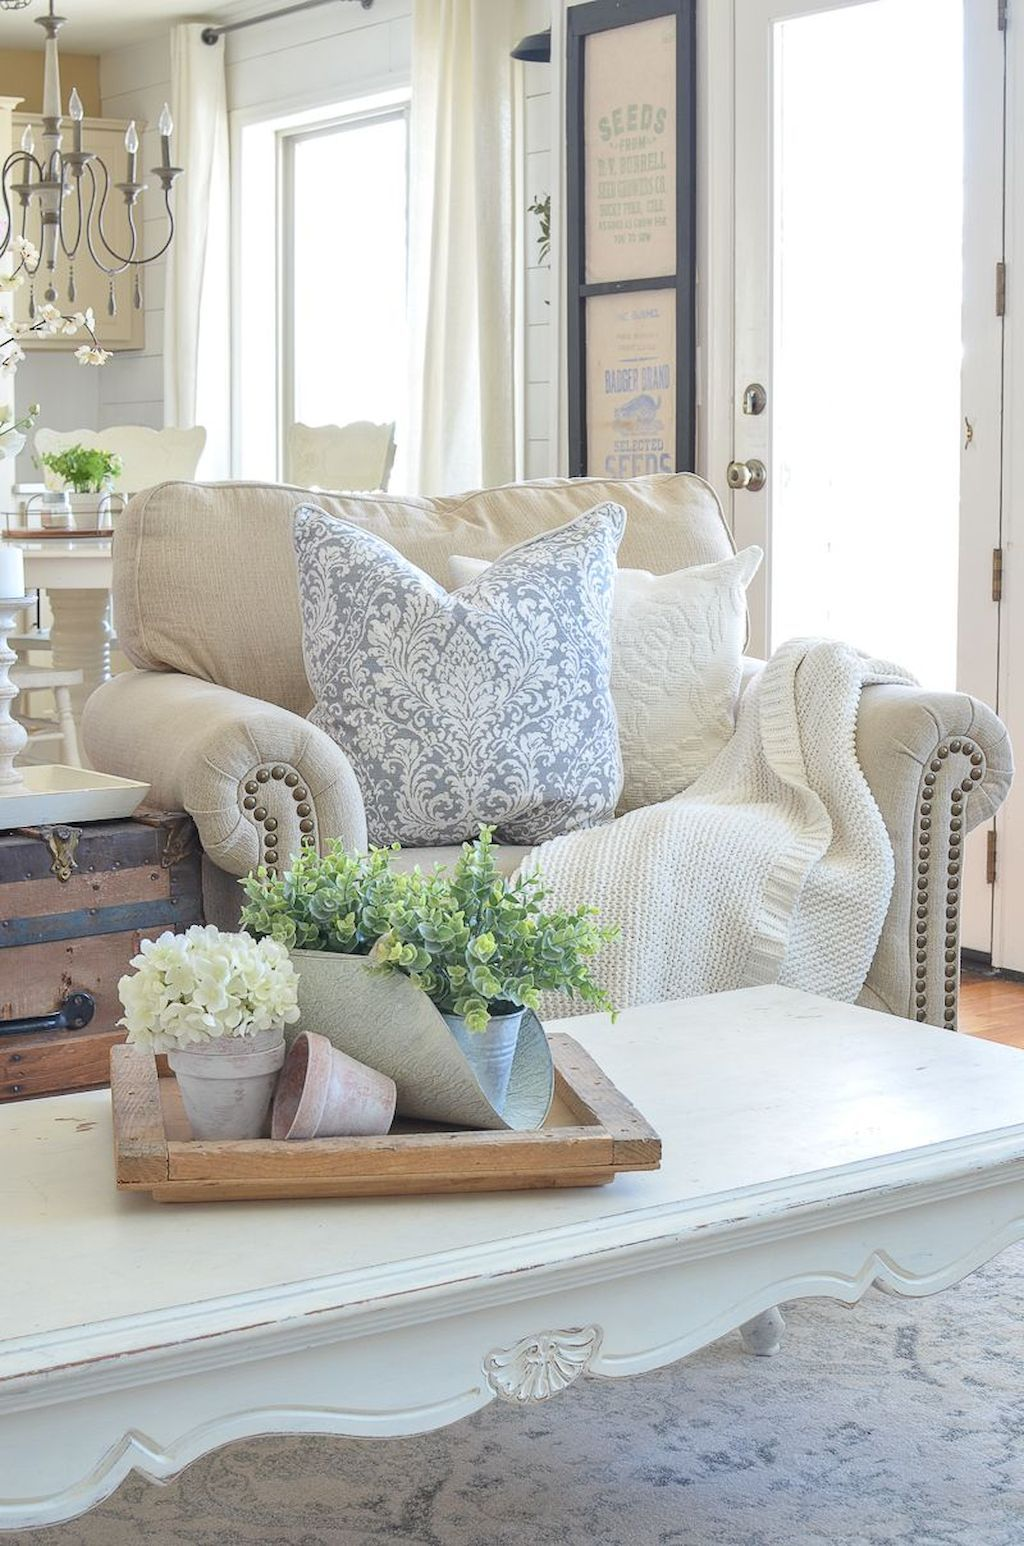 85 Fresh Shabby Chic Living Room Decor Ideas On A Budget Shabby Chic Decor Living Room Shabby Chic Room Chic Living Room